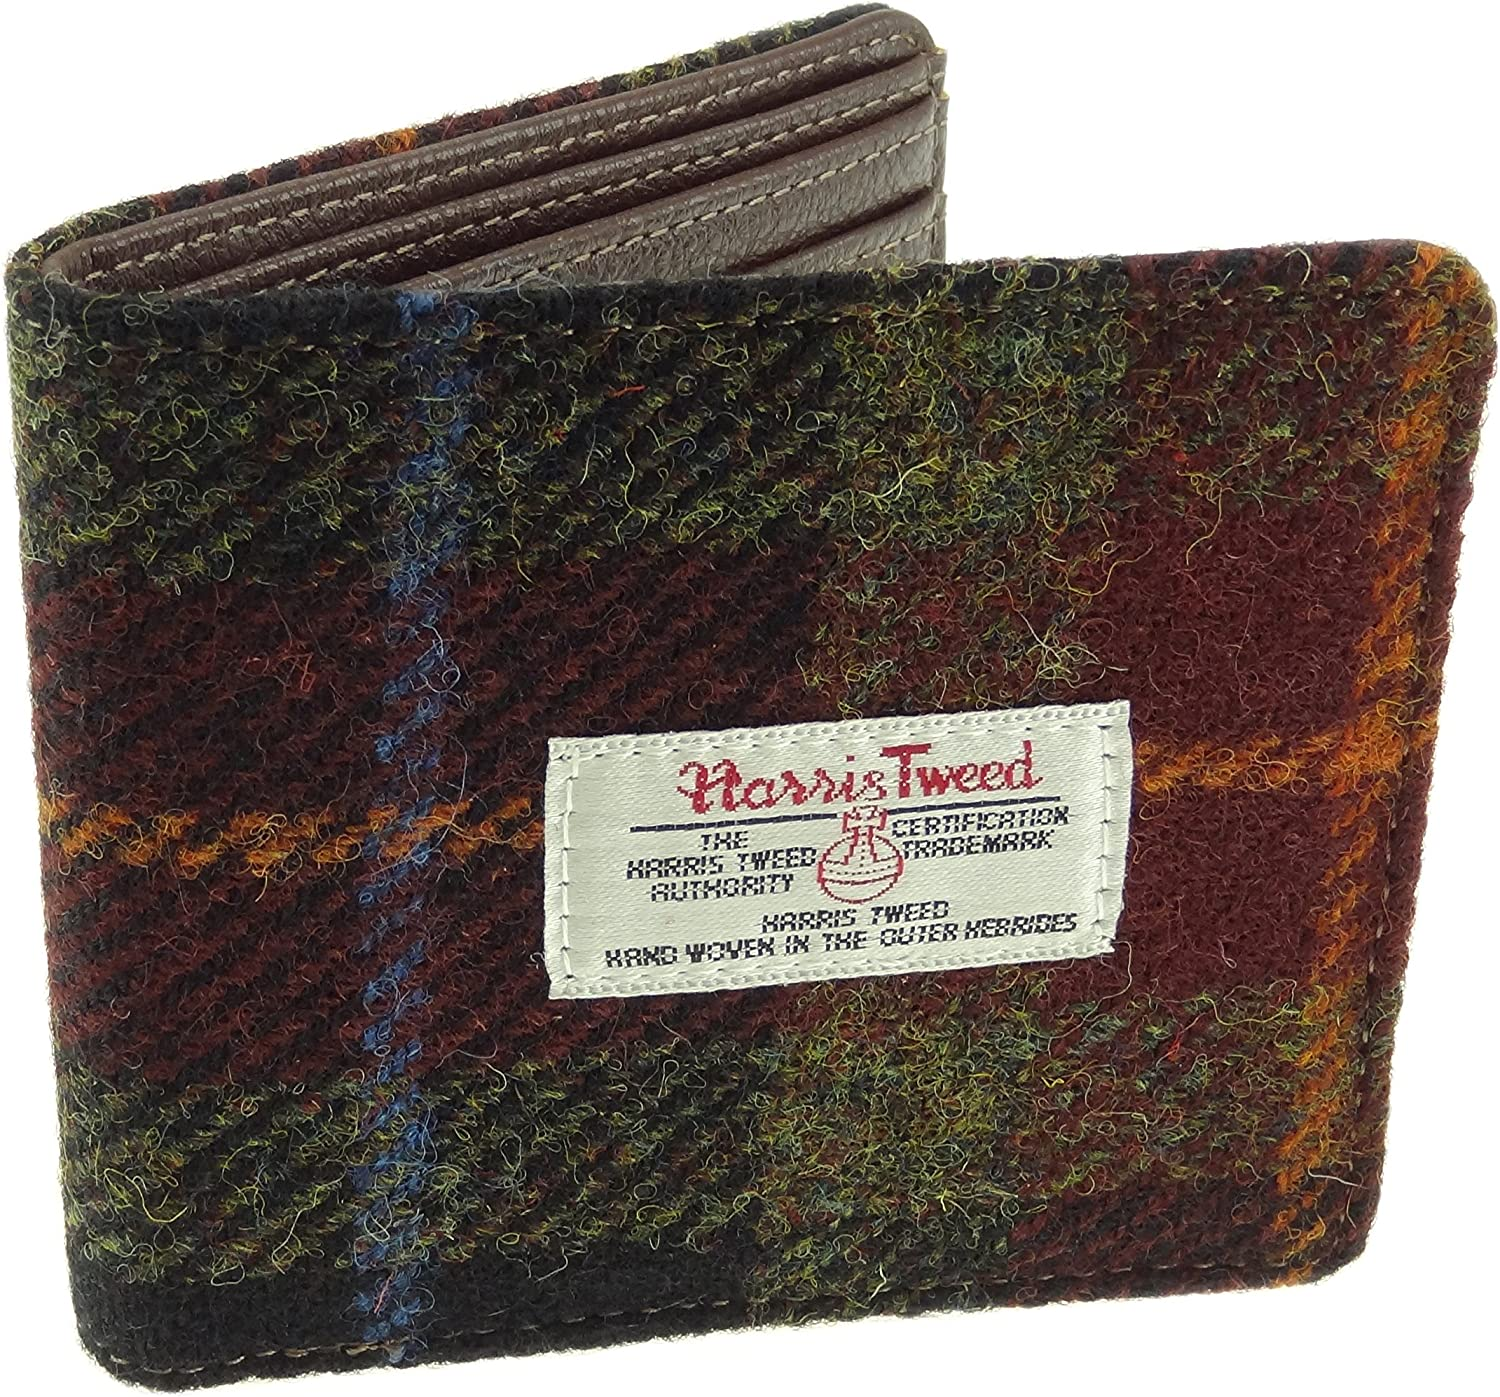 Large wallet brown leather and tweed